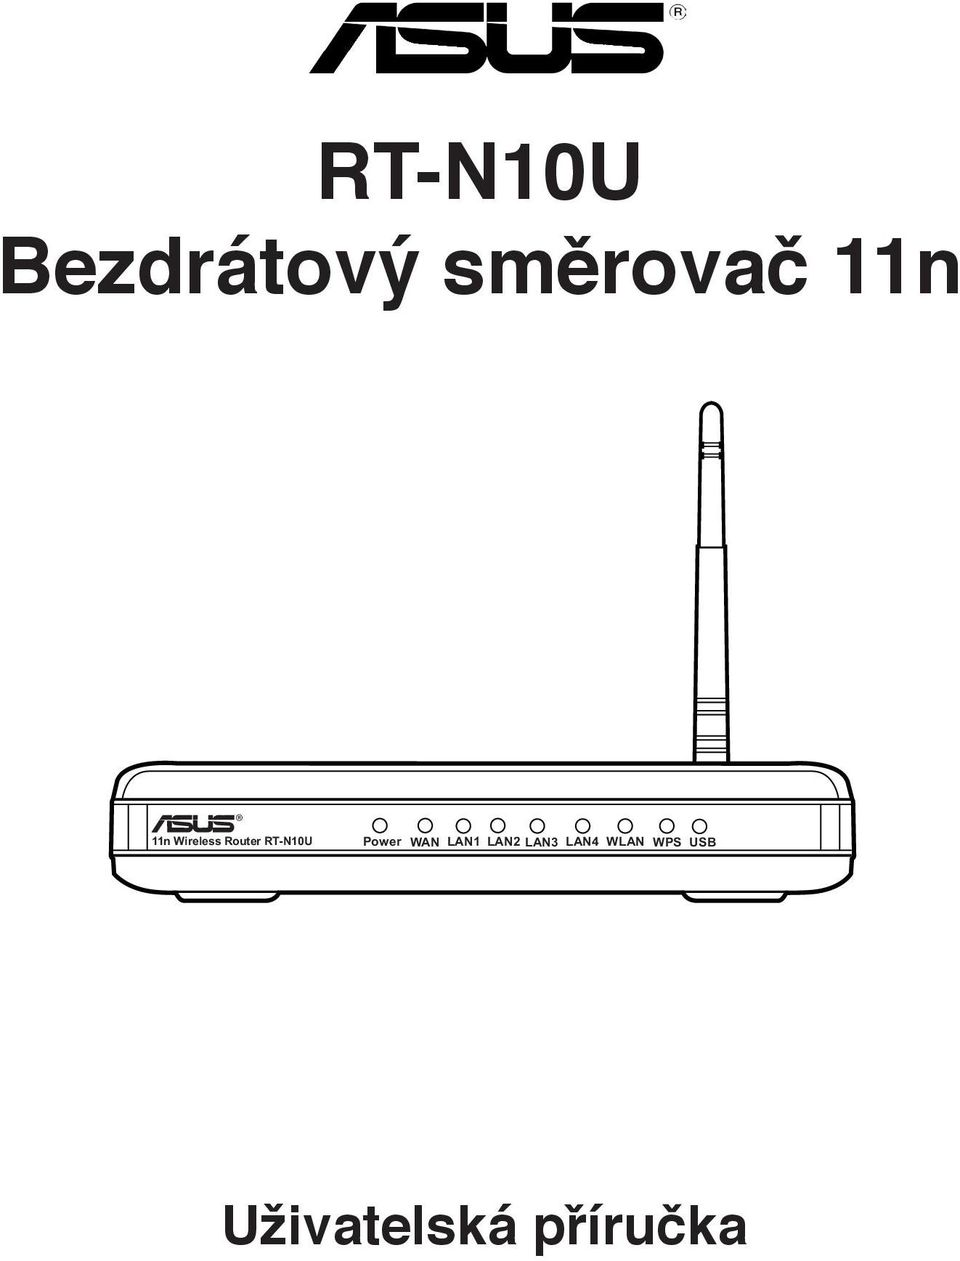 RT-N10U Power WAN LAN1 LAN2